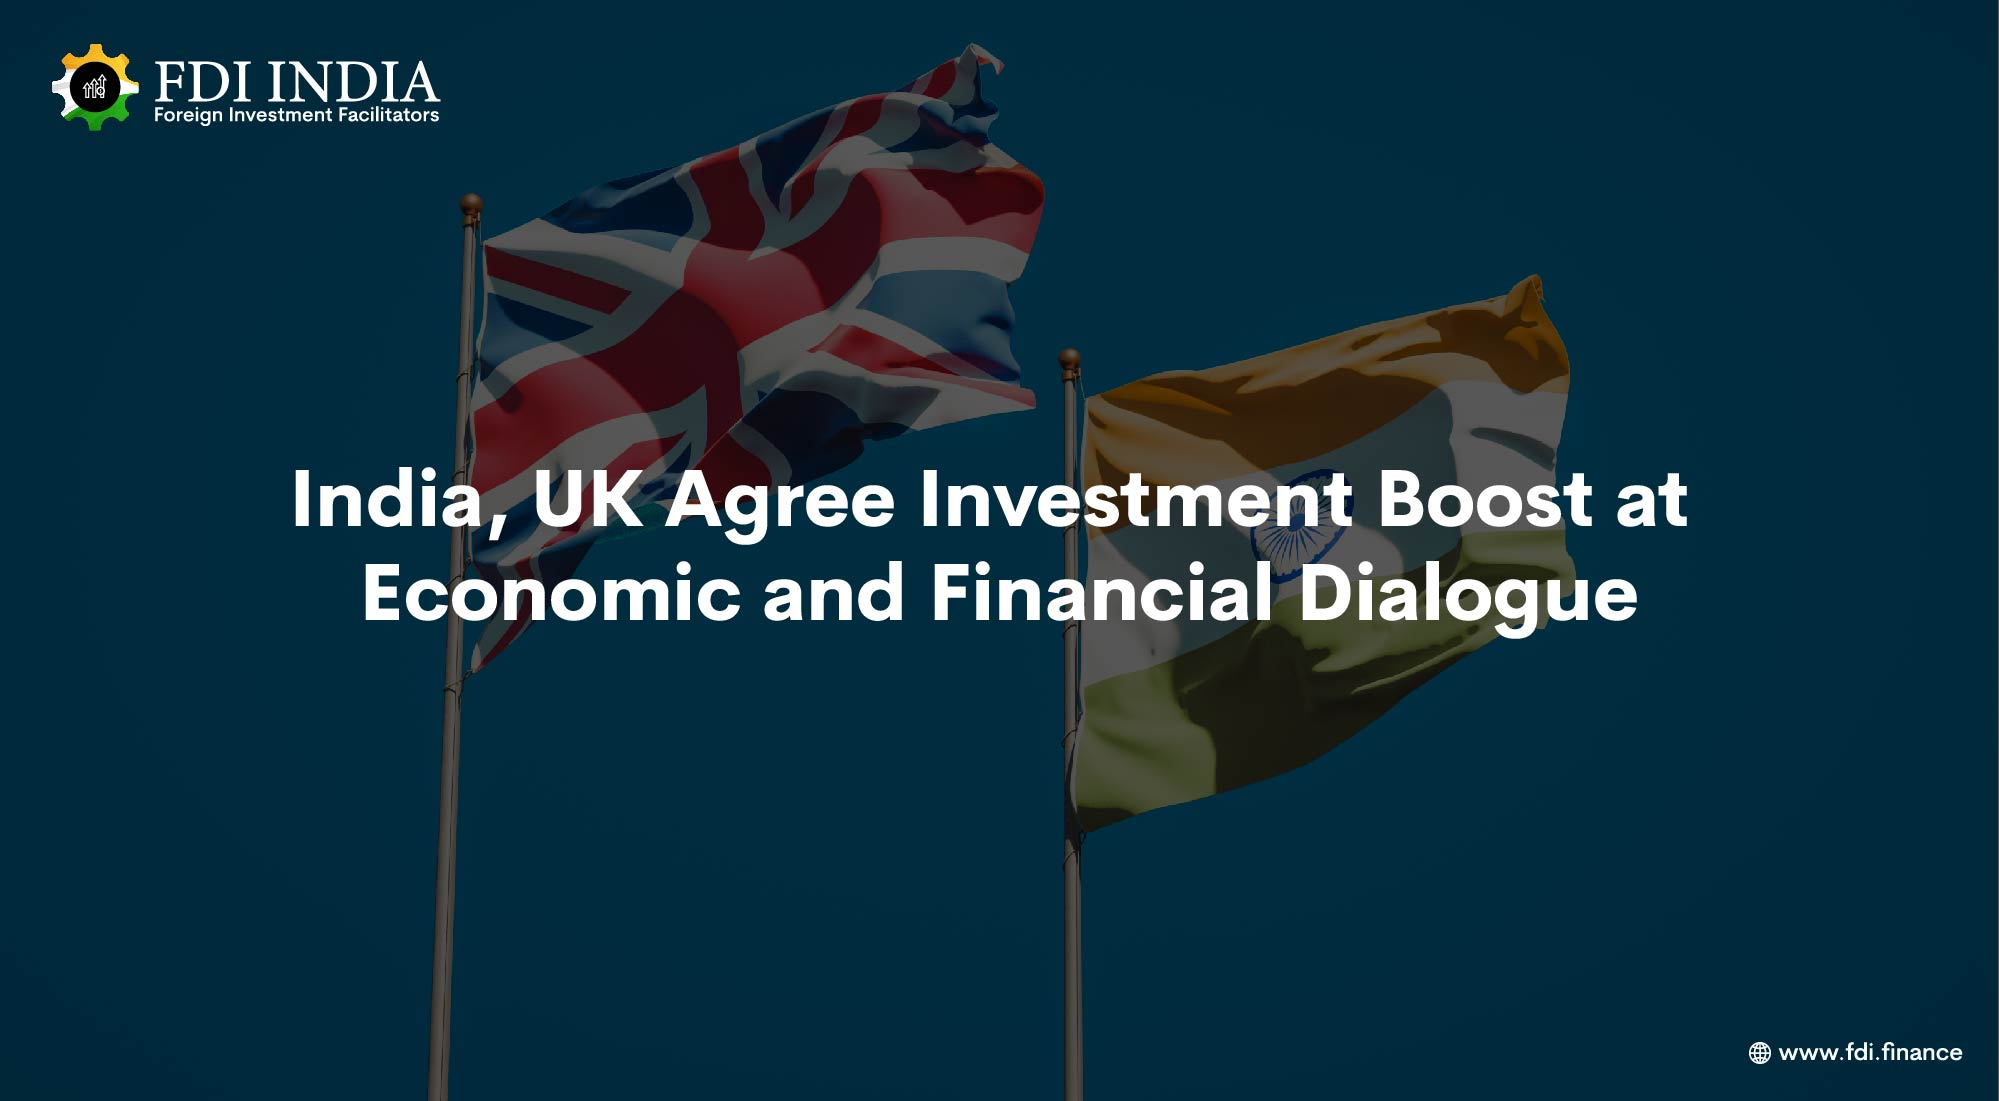 India, UK Agree Investment Boost at Economic and Financial Dialogue